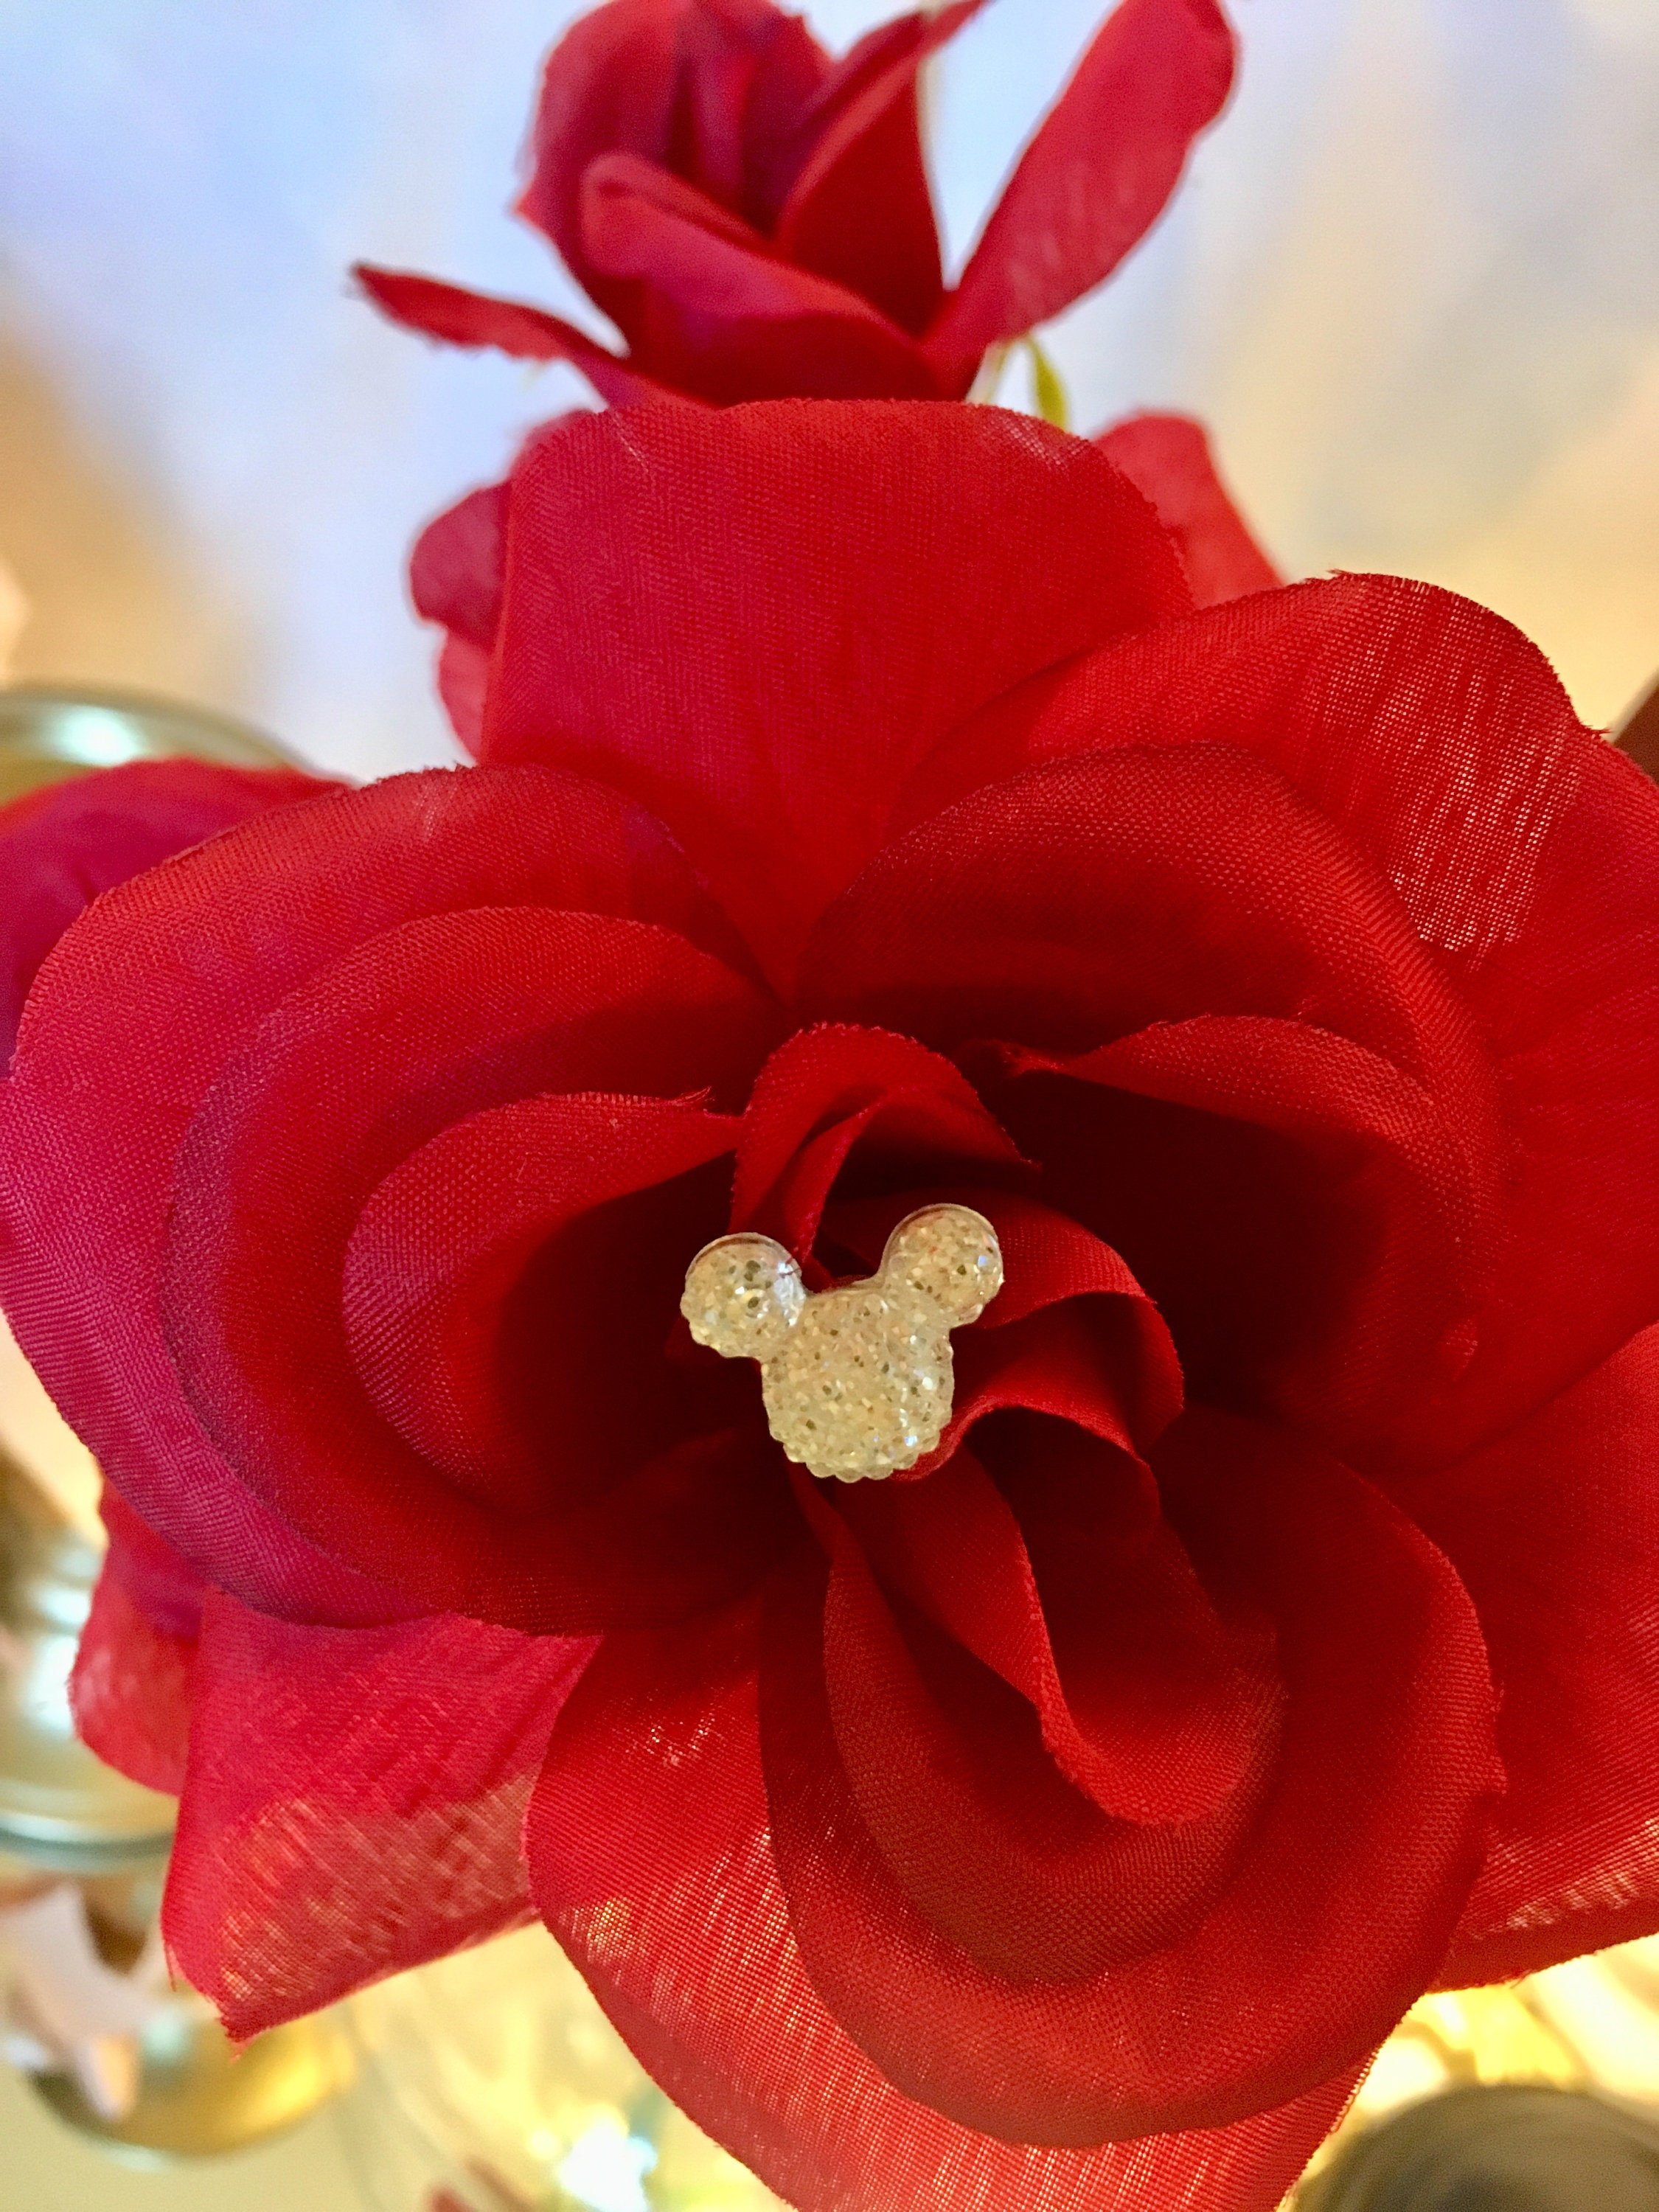 Disney Wedding FREE SHIP 6 Silver Tone Hidden Mouse Ears in your Bouquets for Themed Wedding Flower Pins Floral Picks Reception Centerpieces